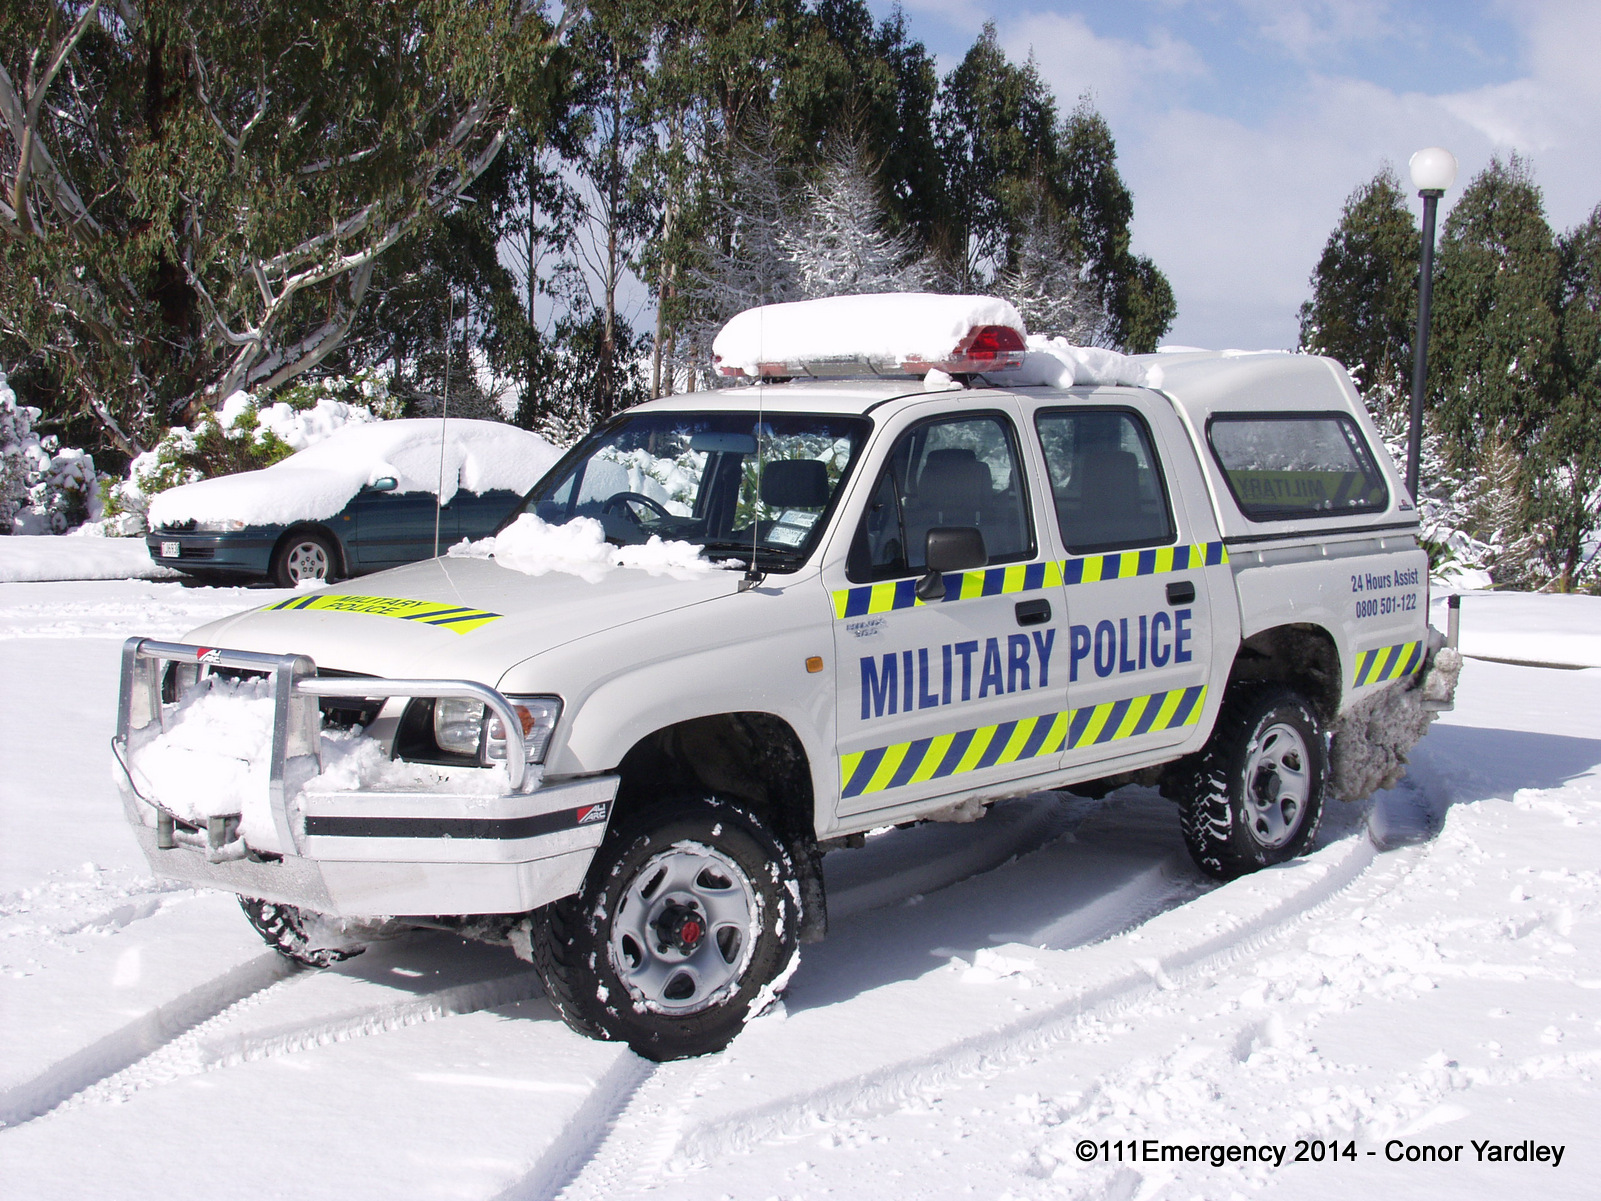 Nz military police